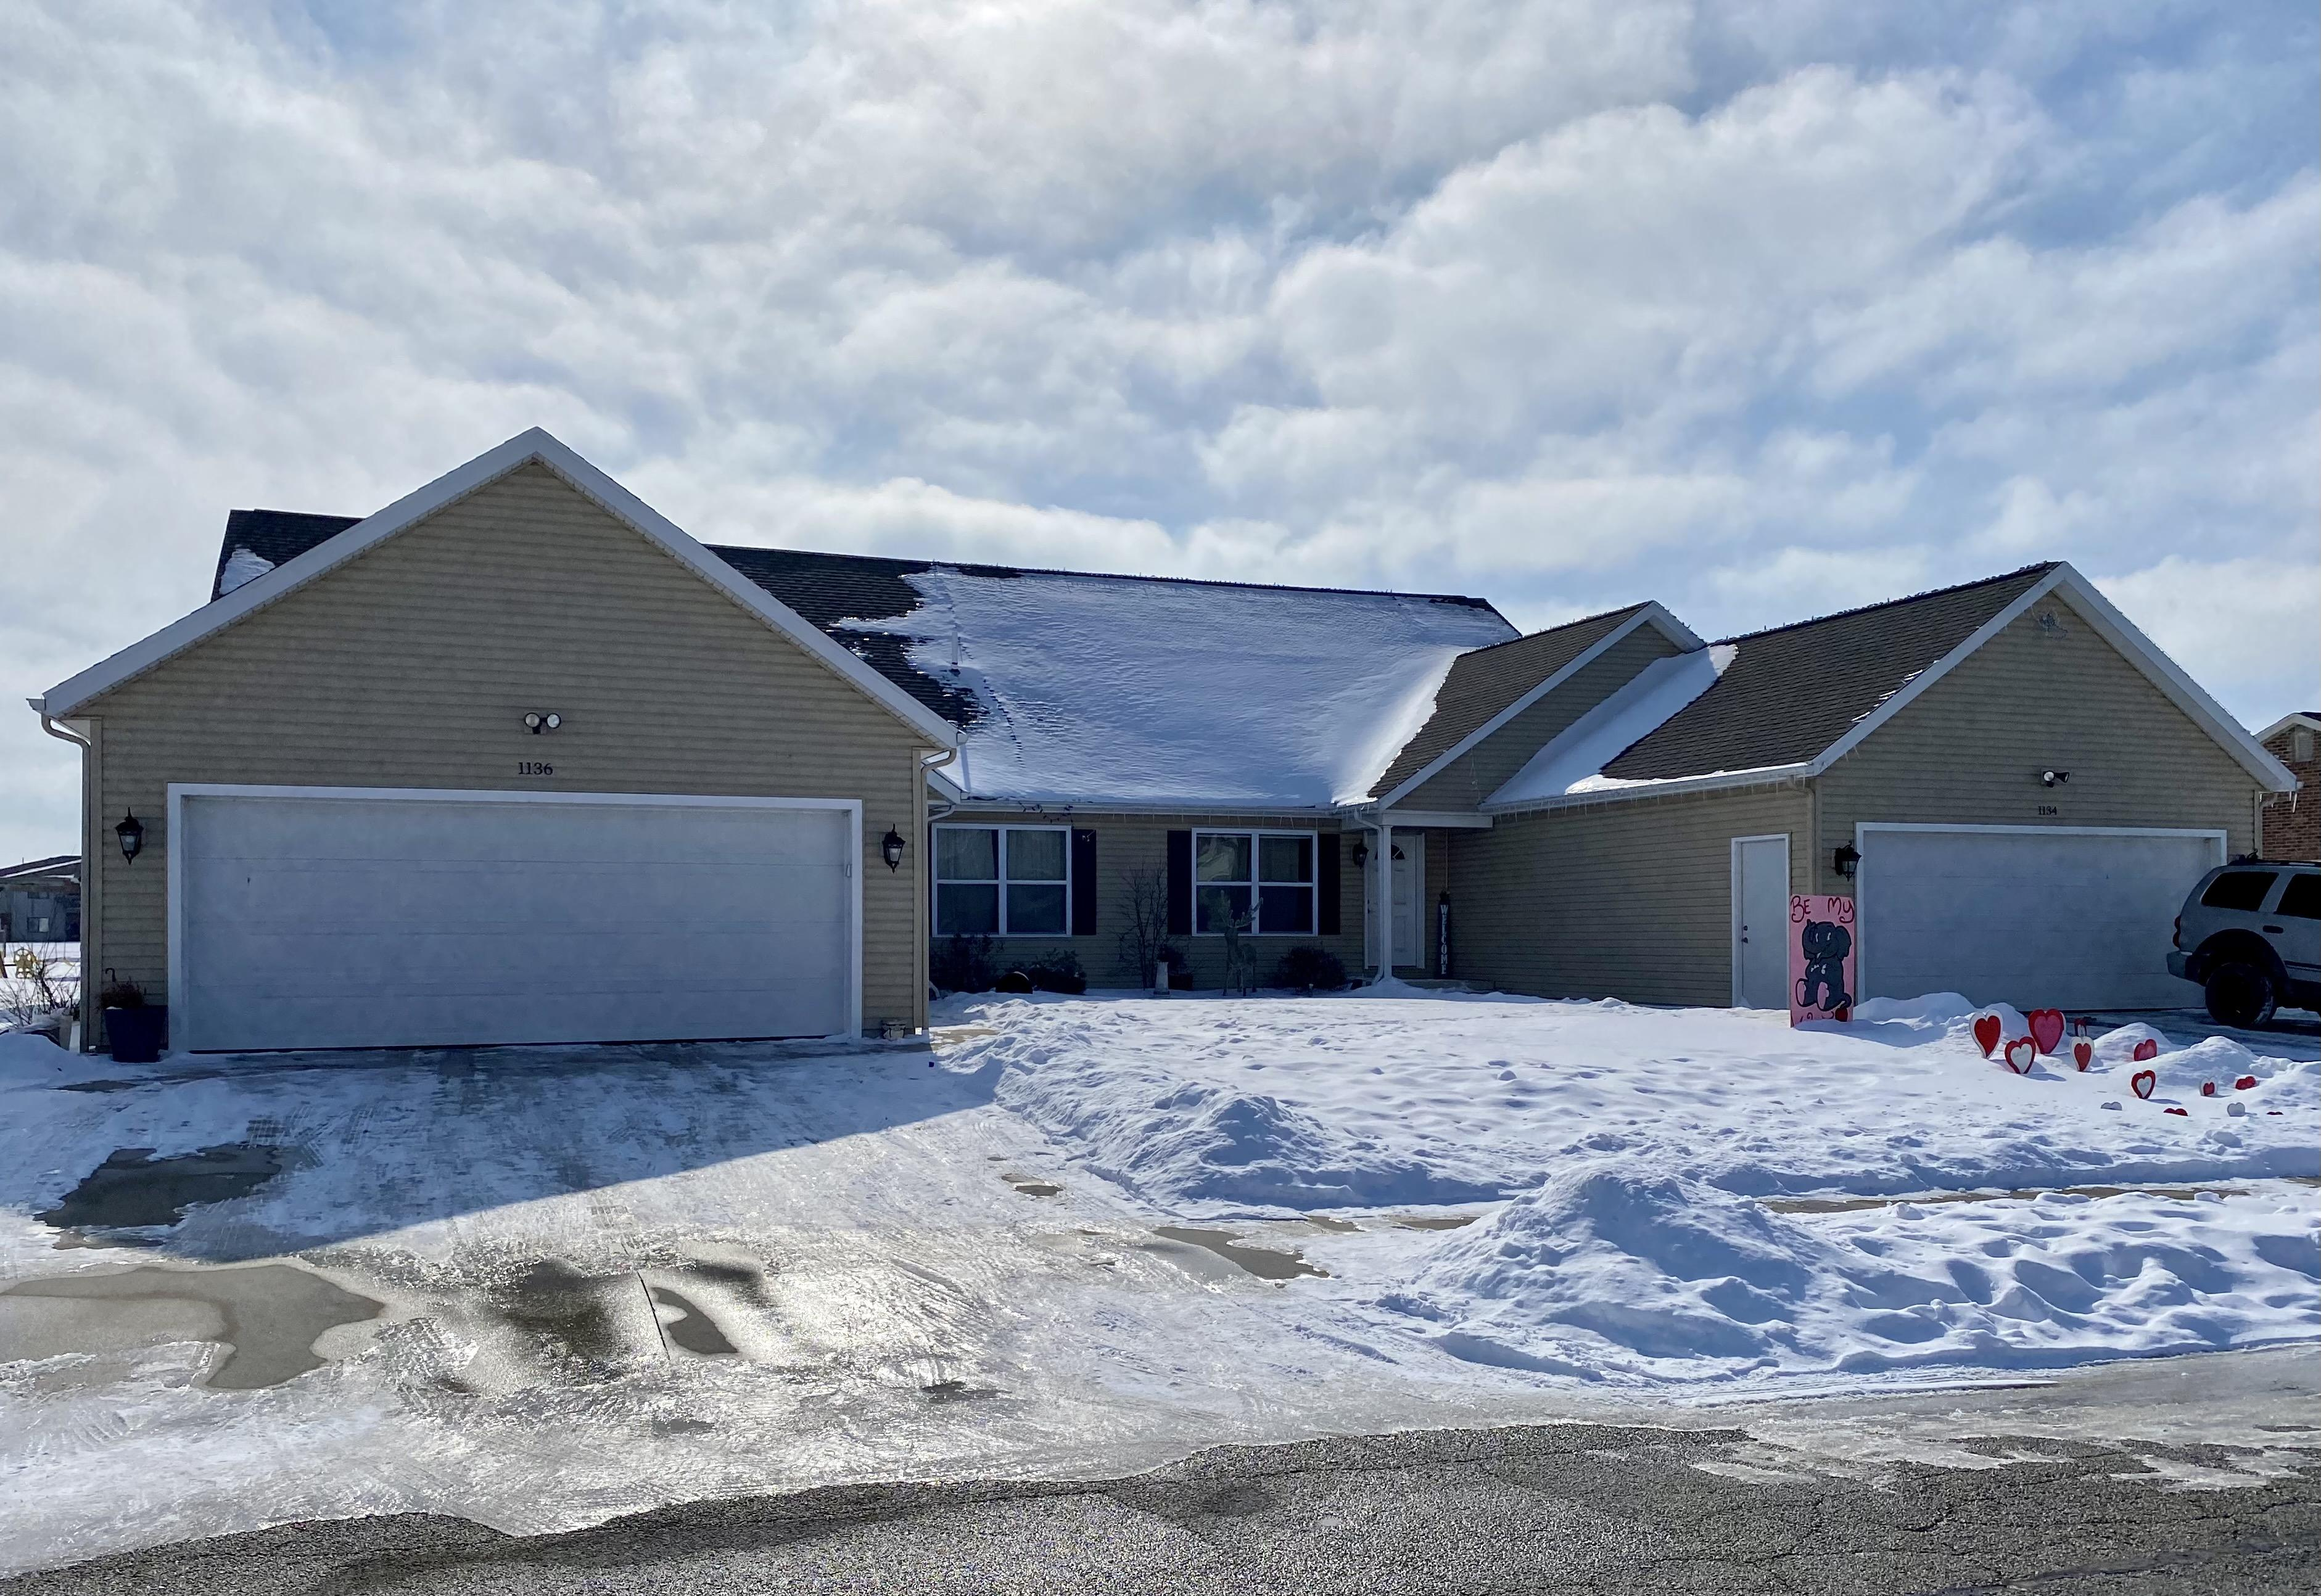 Property Image for 1134 Teaberry Ln